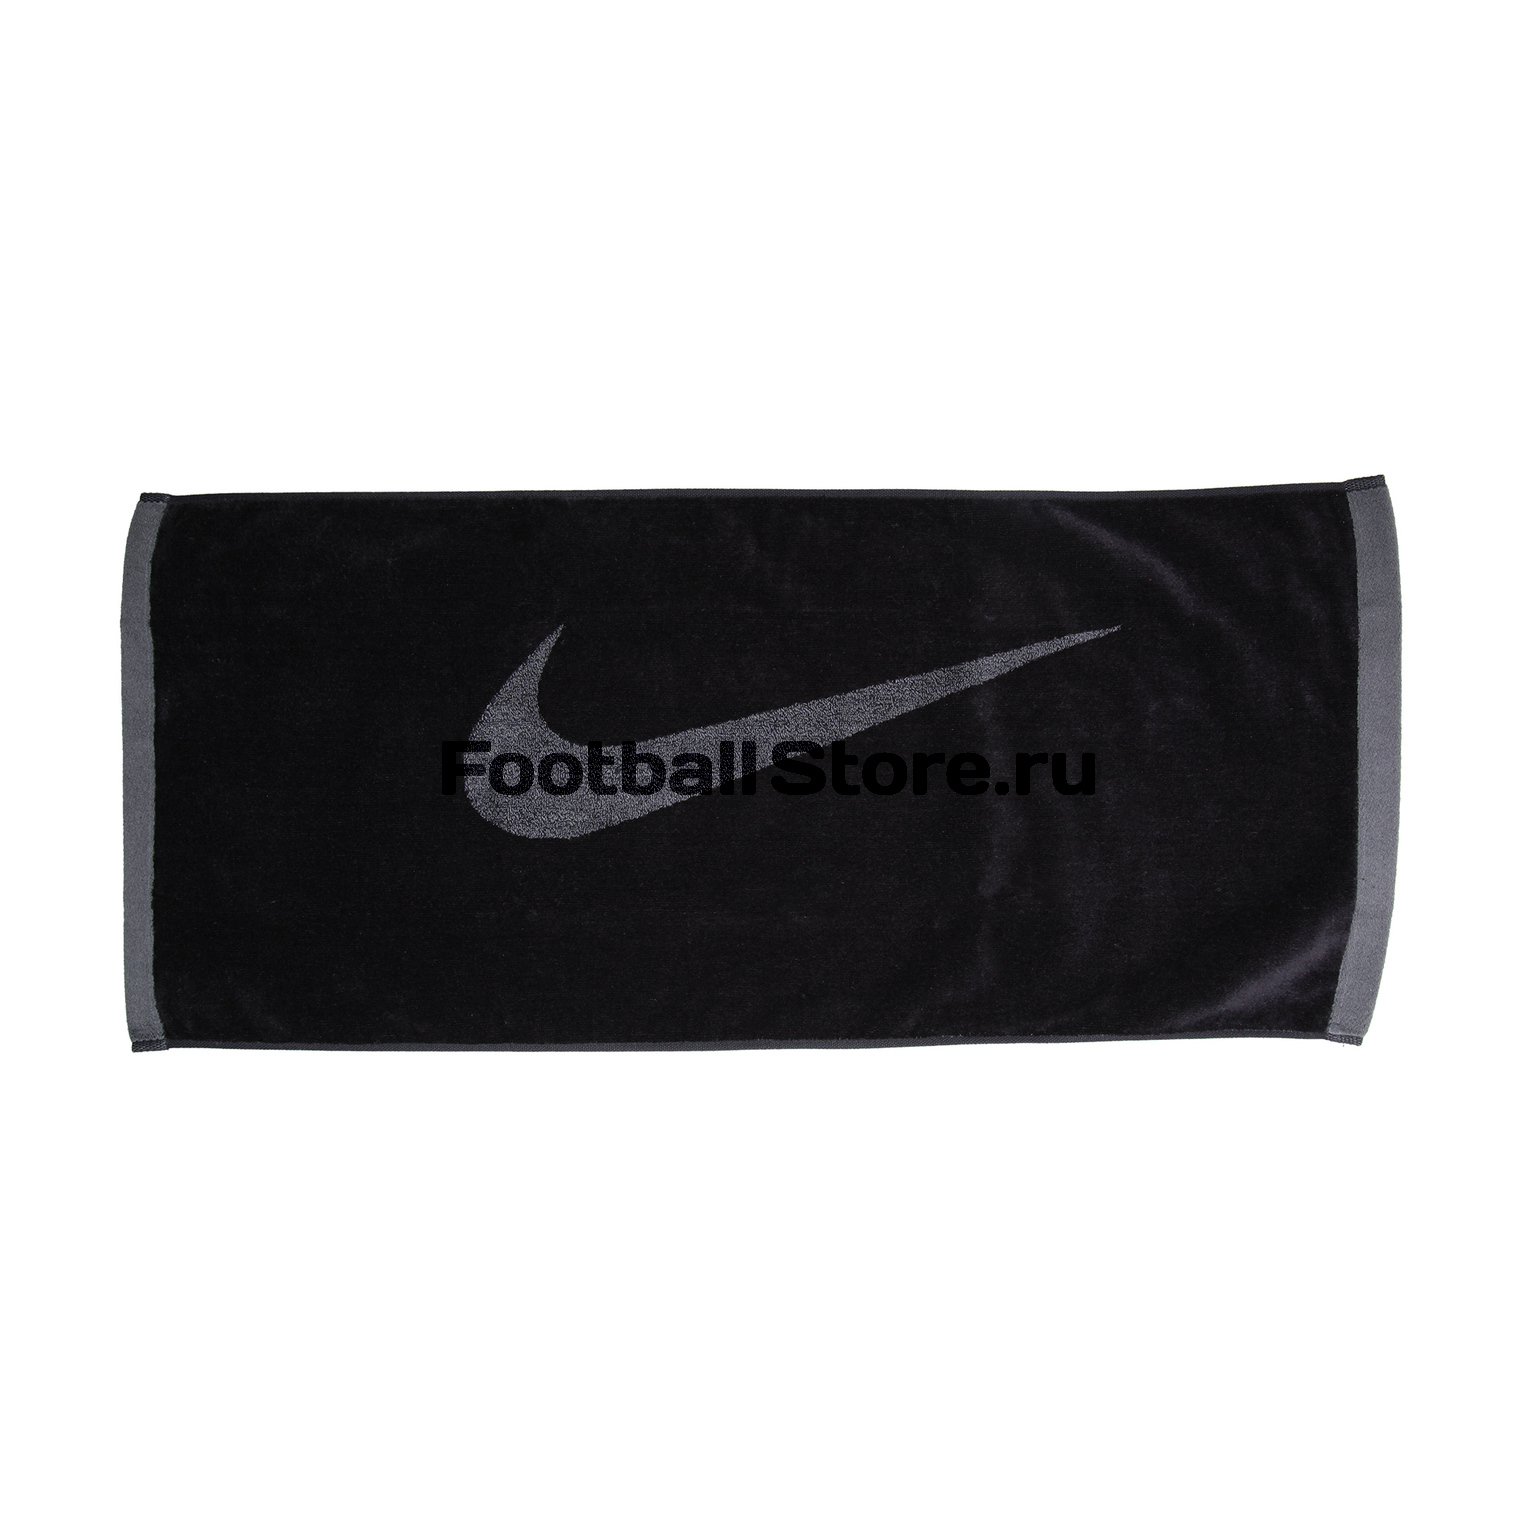 Полотенце Nike Sport Towel Black N.ET.13.046.MD машинка трансформер дикие скричеры машинка трансформер смоки л2 34829